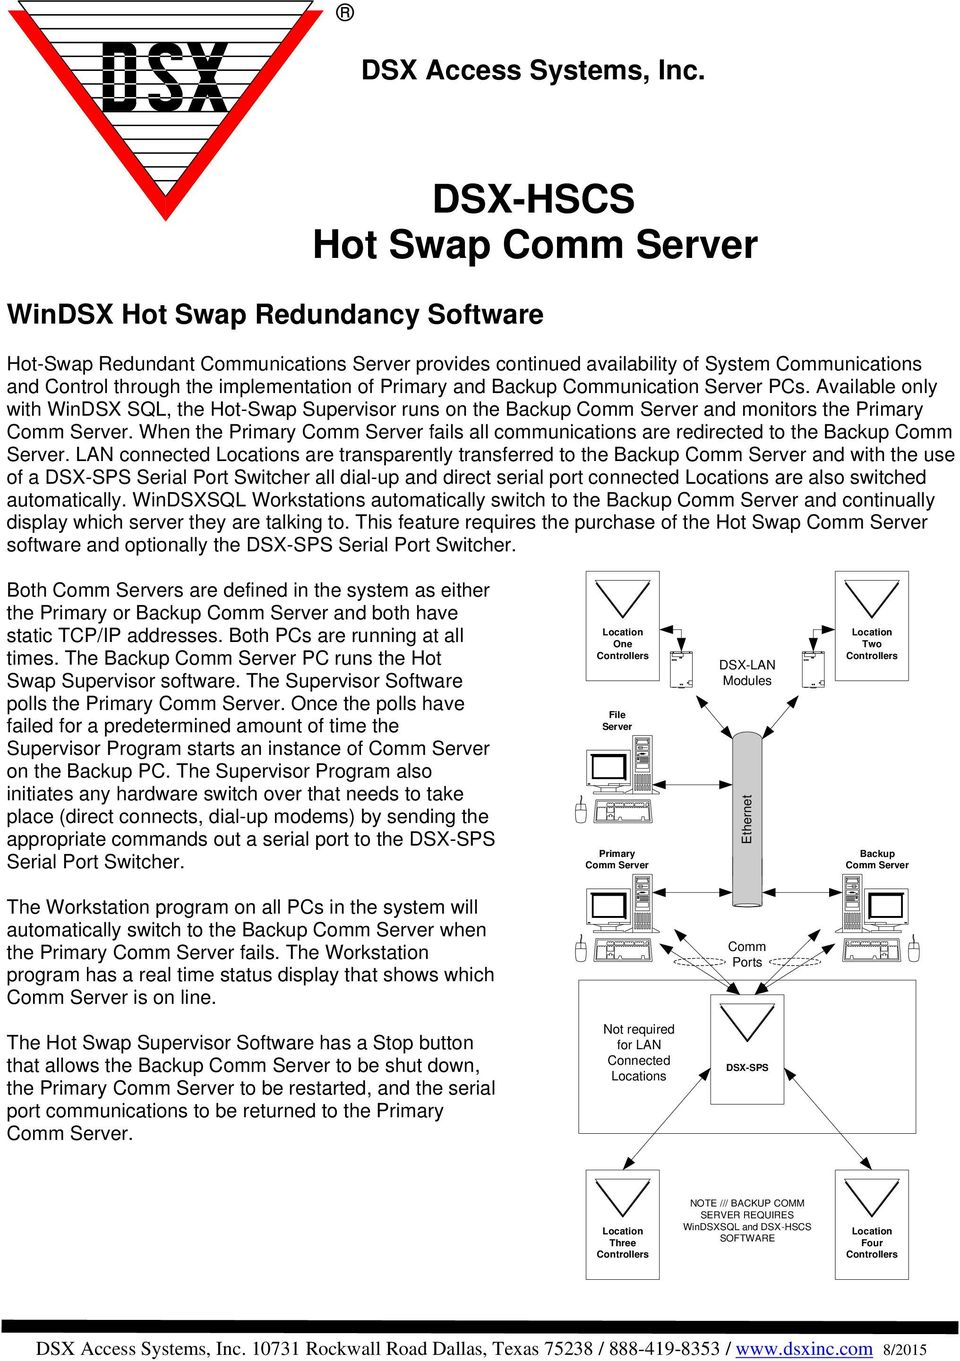 dsx power supply wiring diagram best wiring libraryimplementation of  primary and backup communication server pcs available